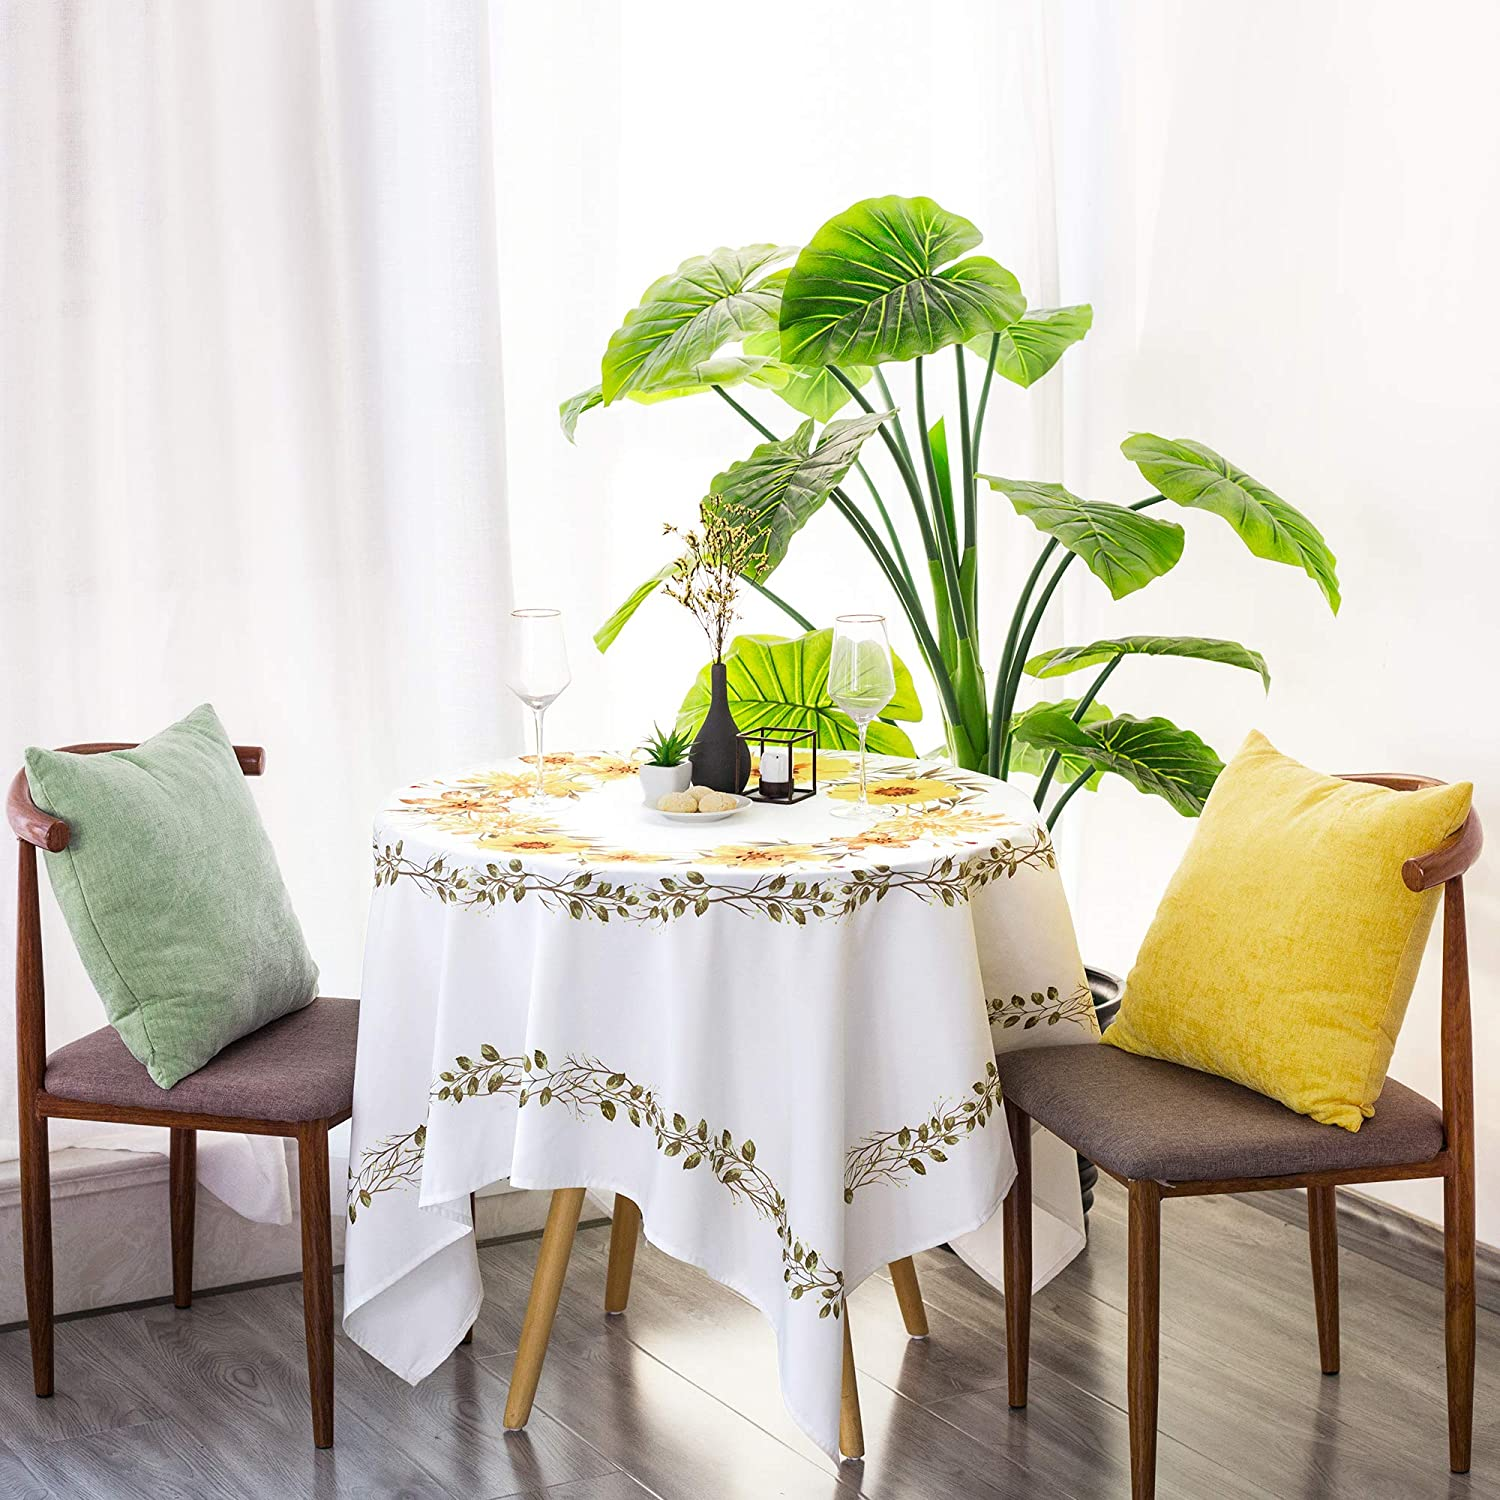 CaliTime Tablecloths 60 x 60 Inch Waterproof Stain Resistant Yellow Flower Print Modern Decorative Polyester Pongee Square Table Cover for Outdoor Picnic Kitchen Dining